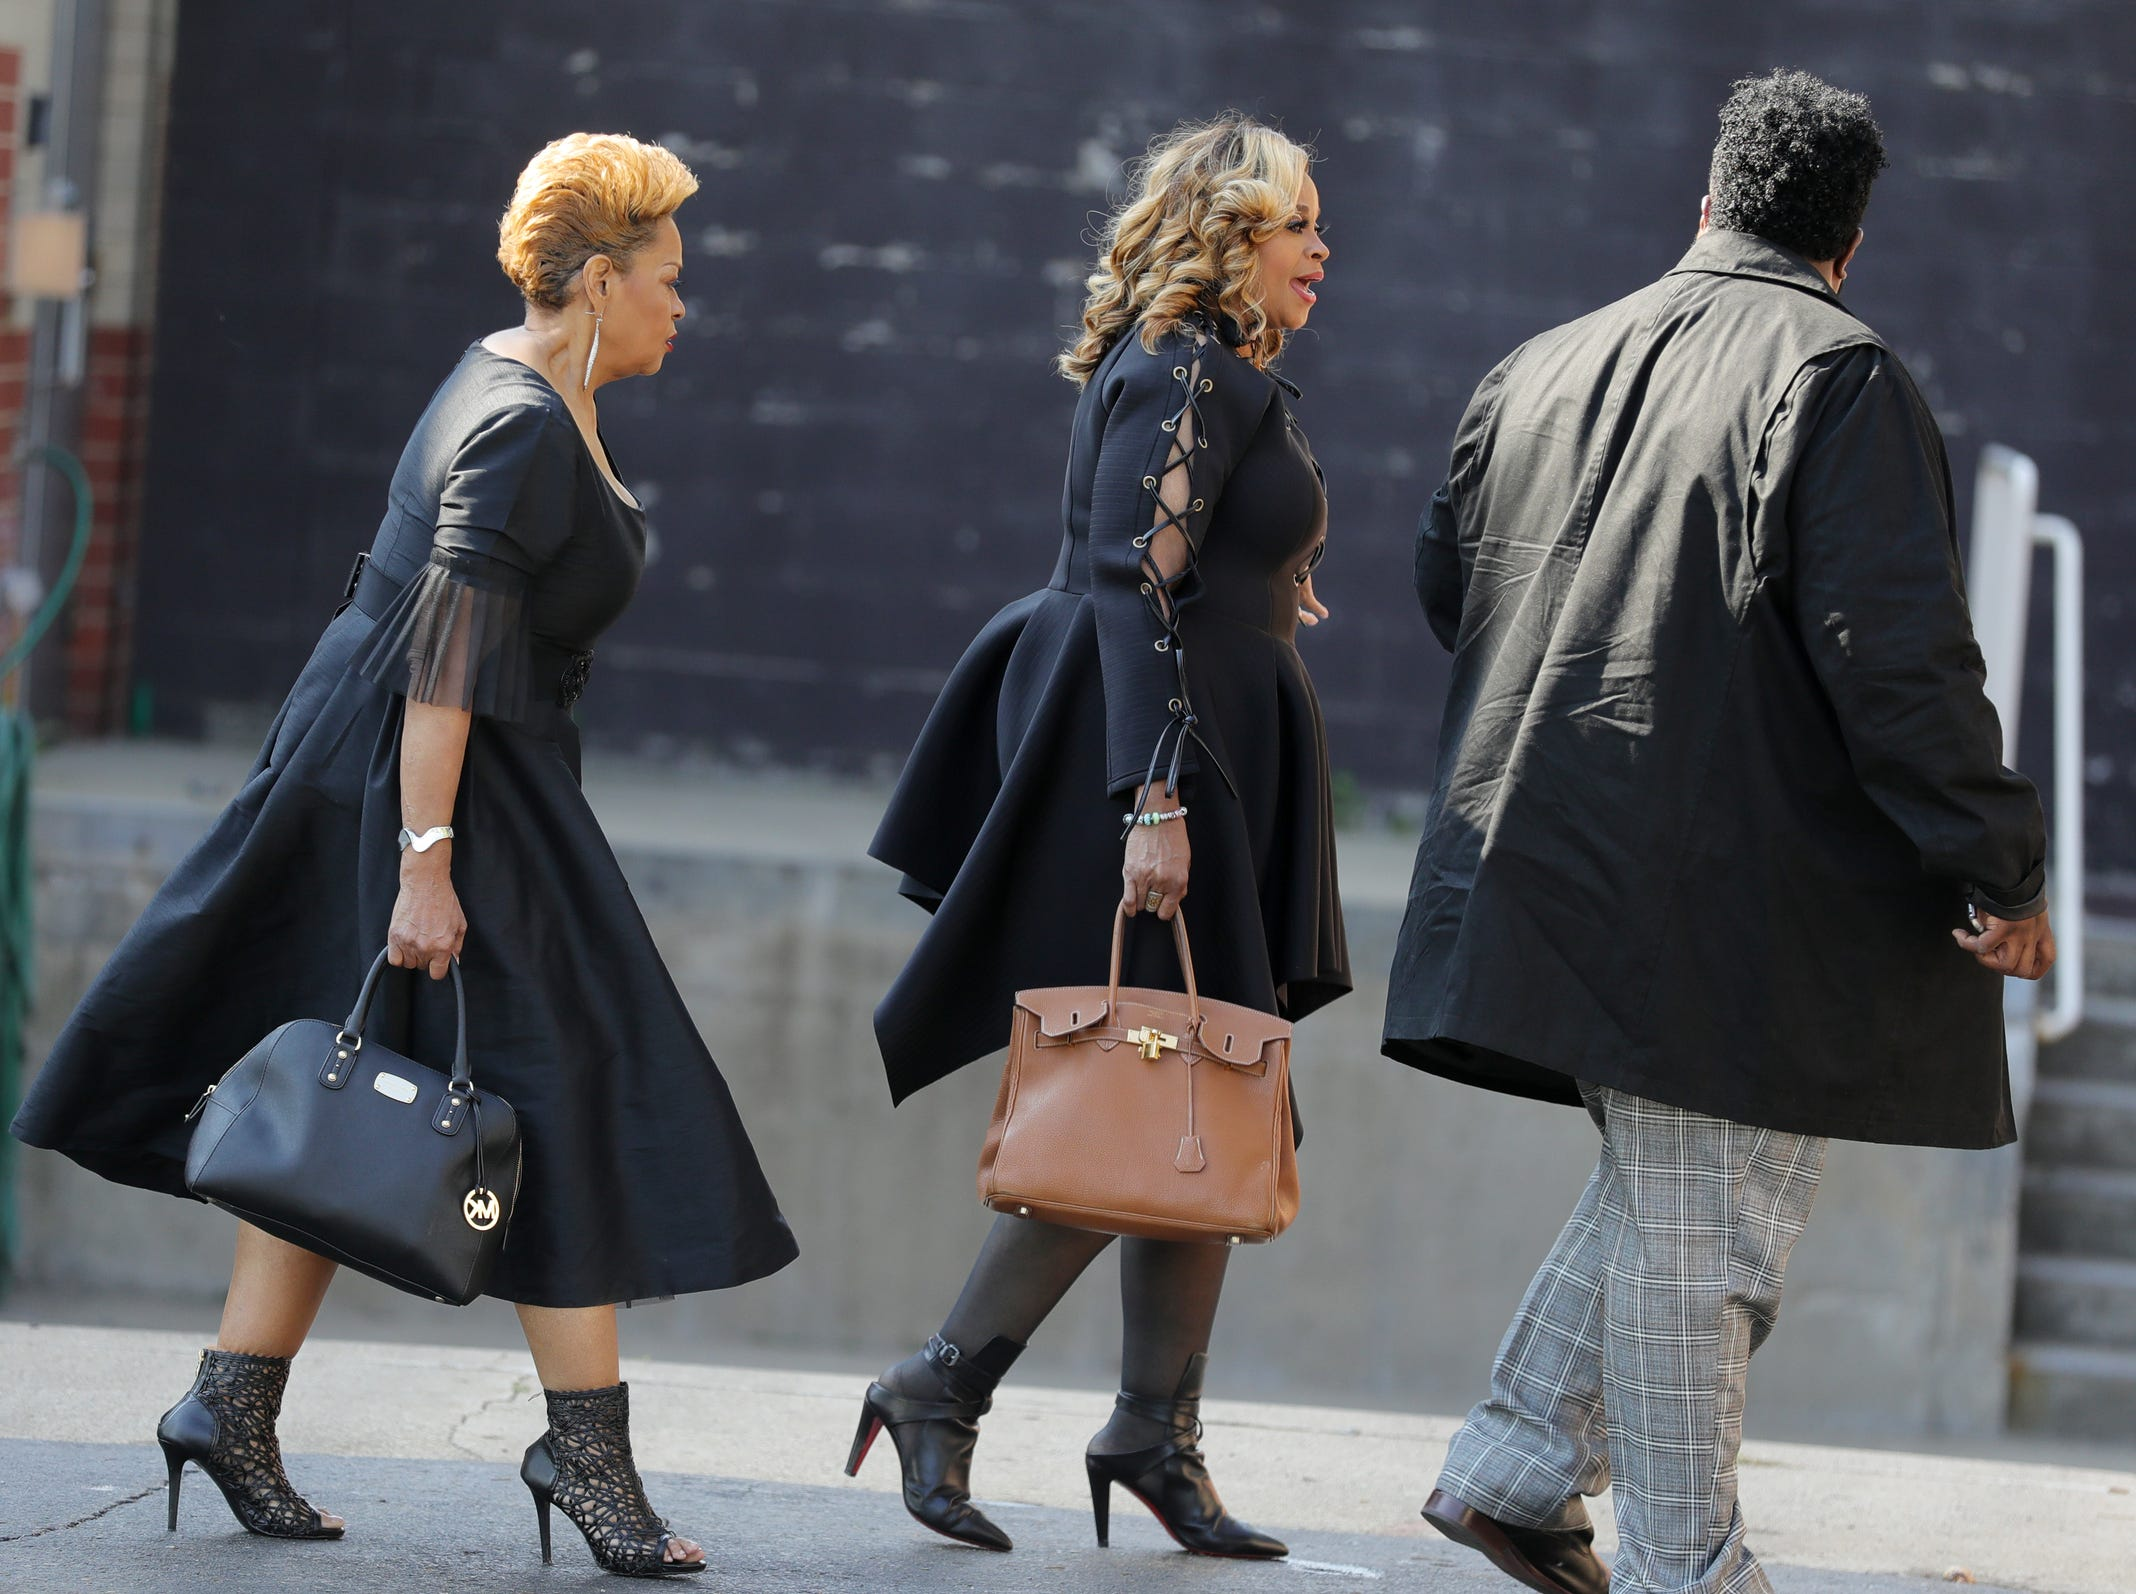 Members of the Clark Sisters arrive for Aretha Franklin's funeral at Greater Grace Temple in Detroit on Friday, August 31, 2018.